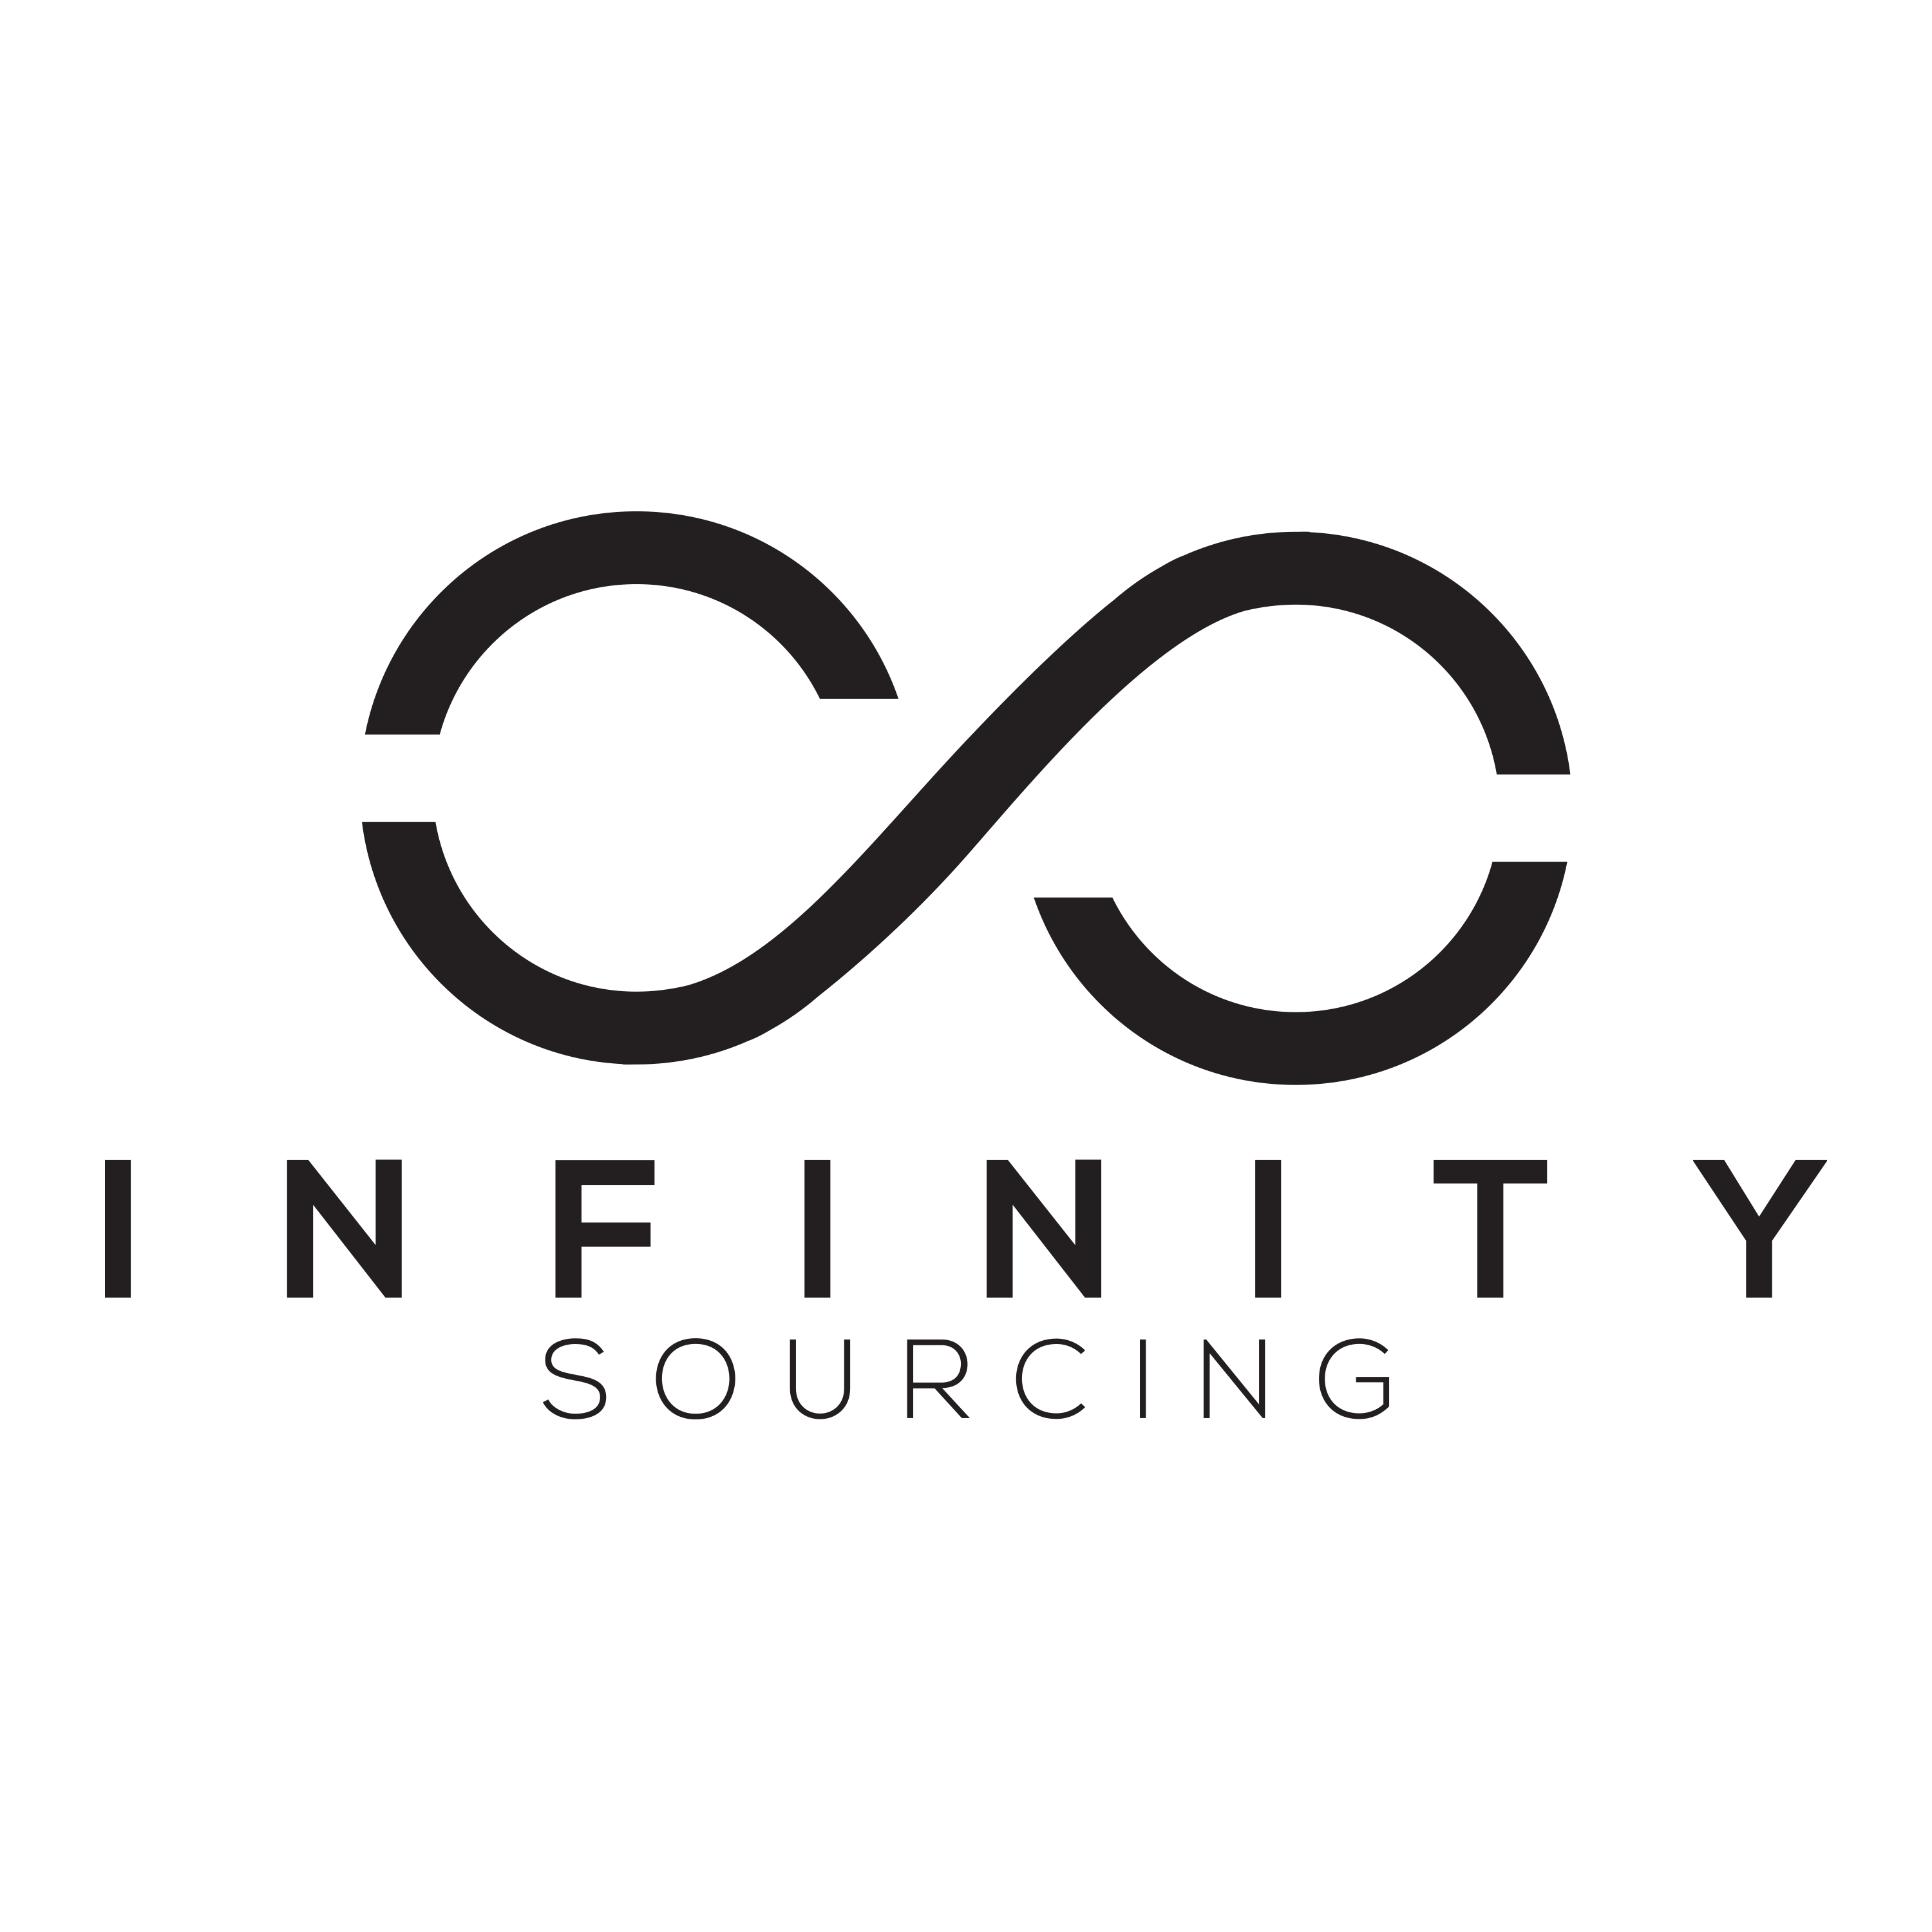 INFINITY SOURCING